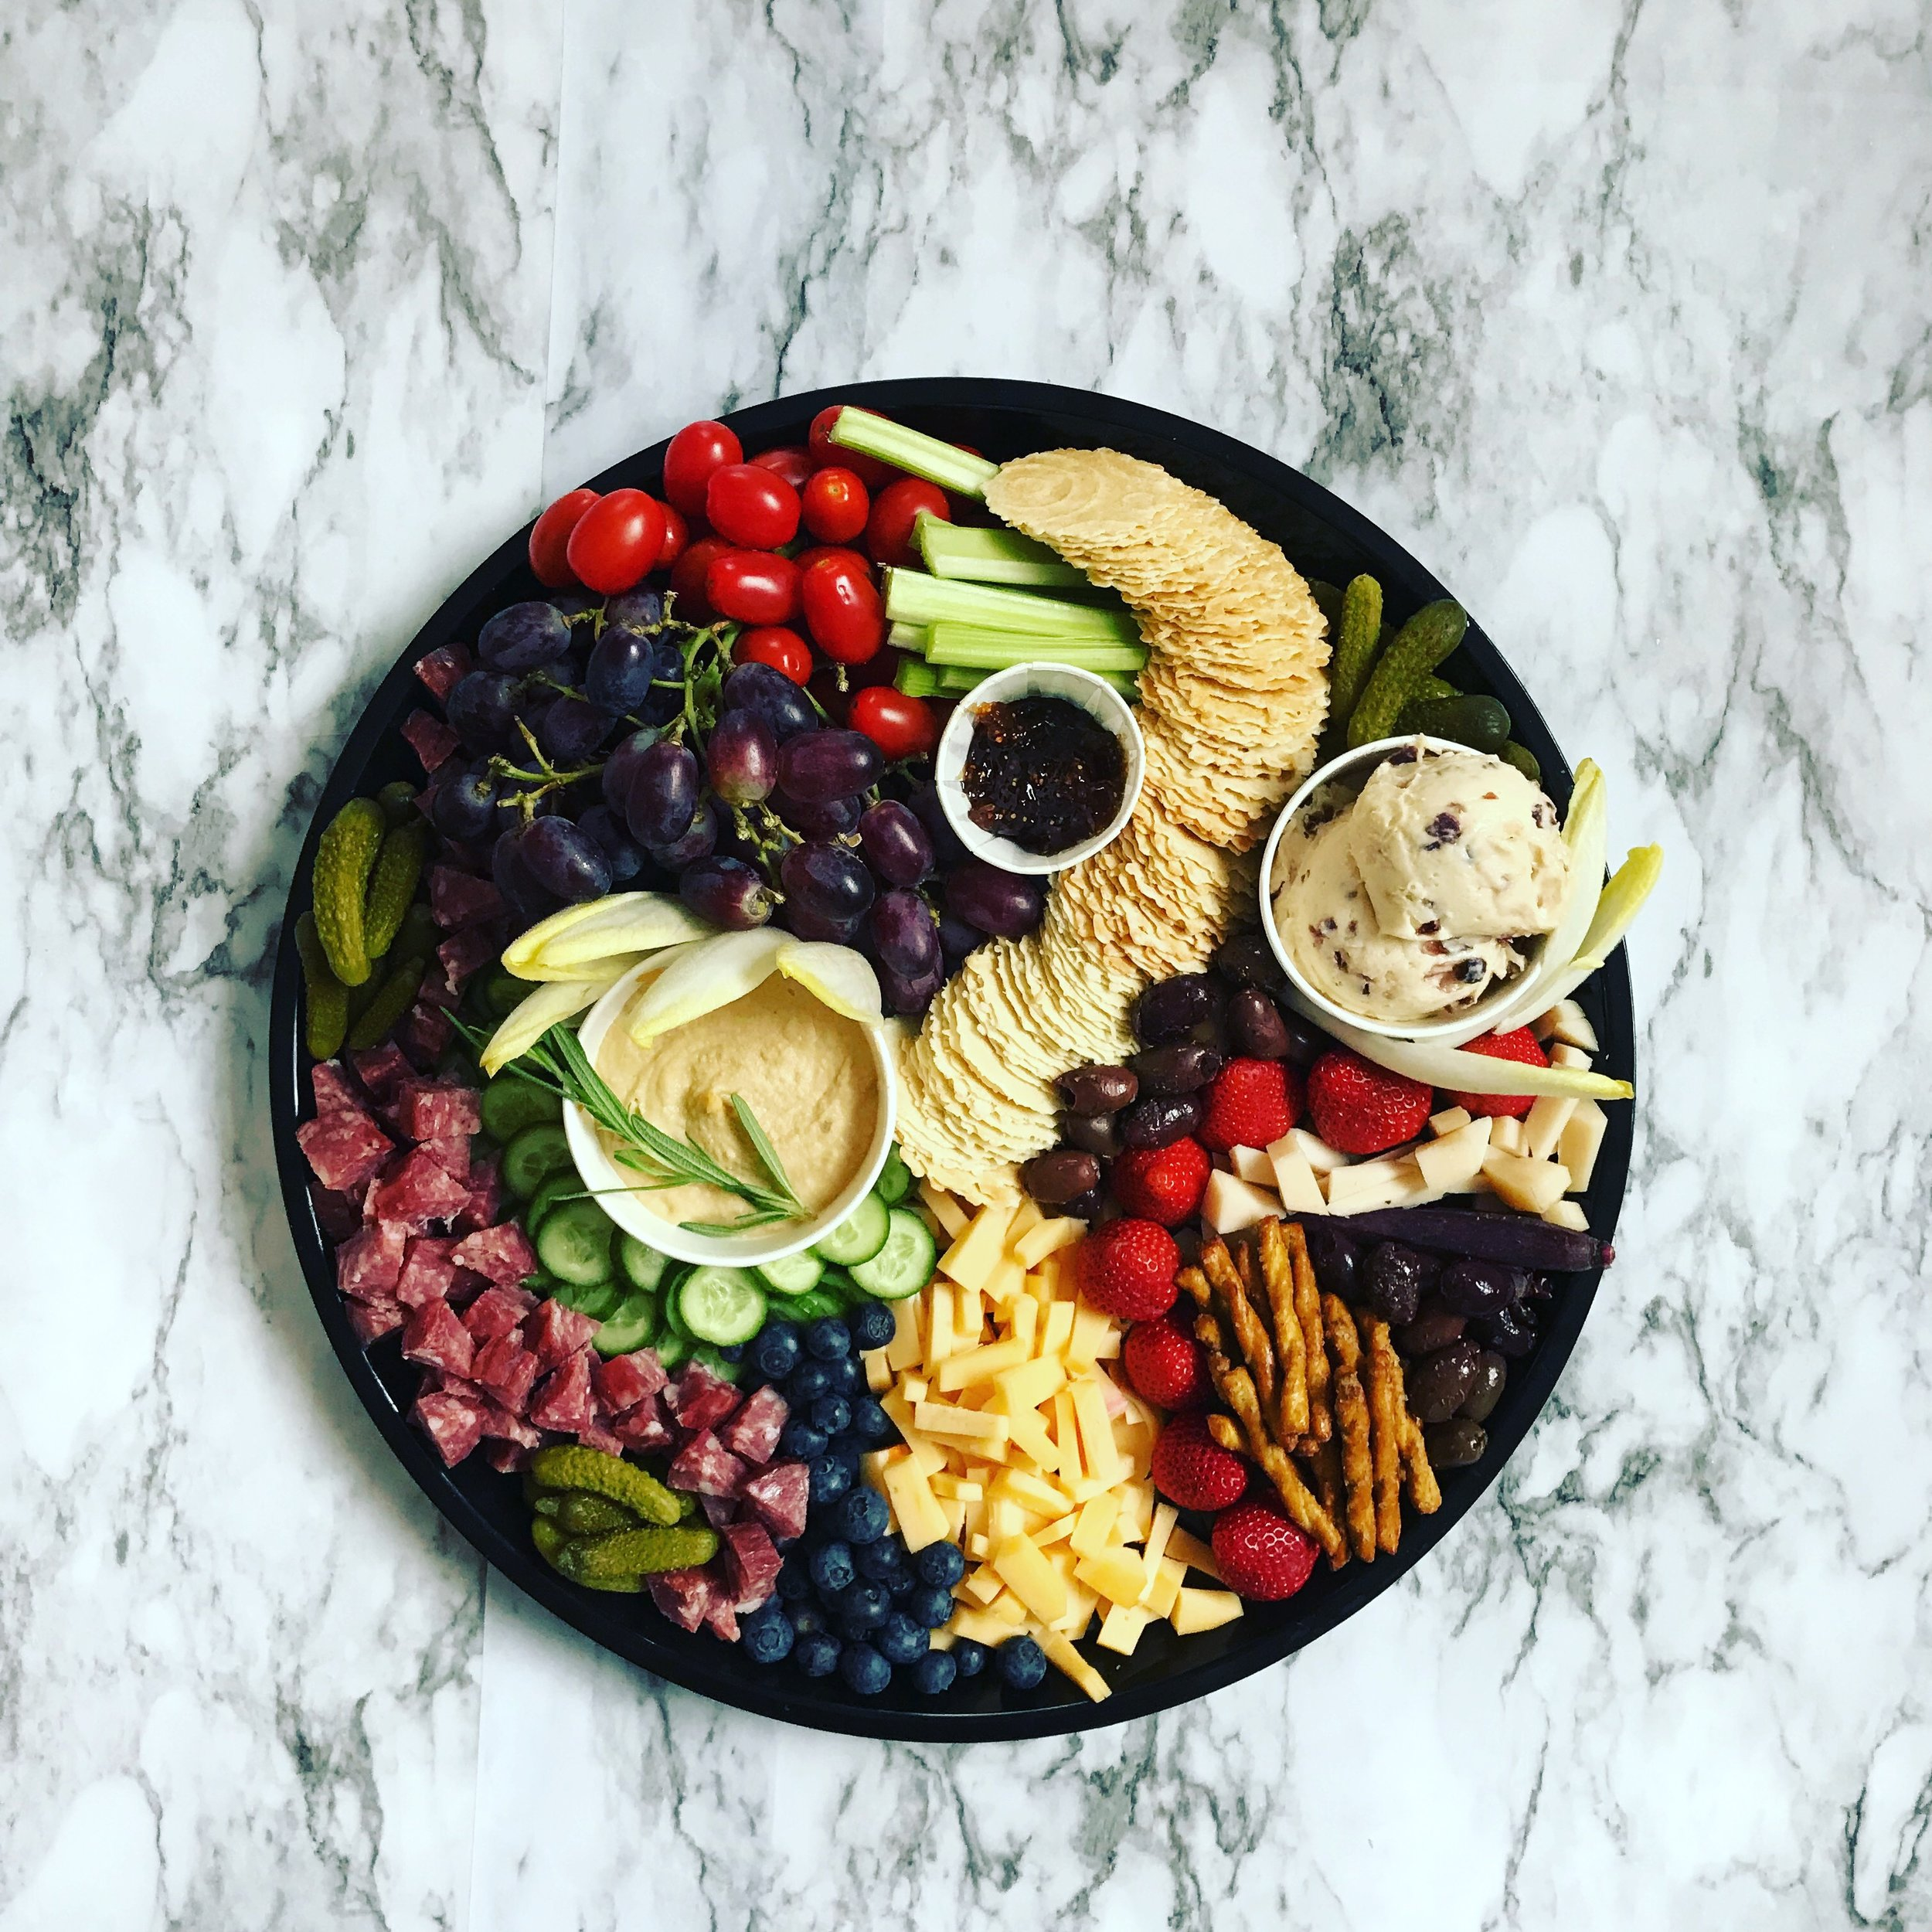 Snacking Platter Option 2